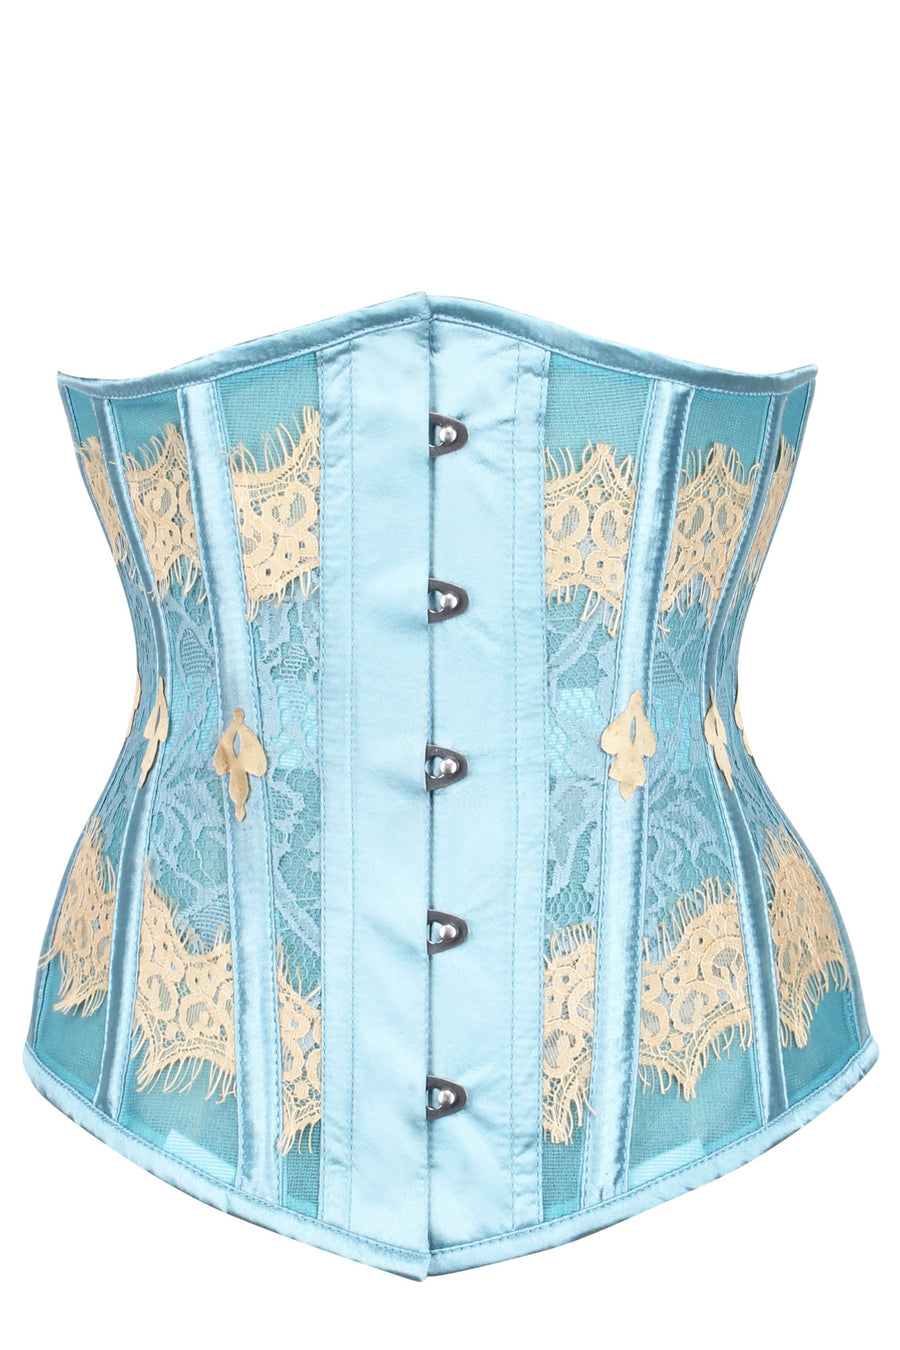 Duck Egg Blue Lace & Mesh Underbust